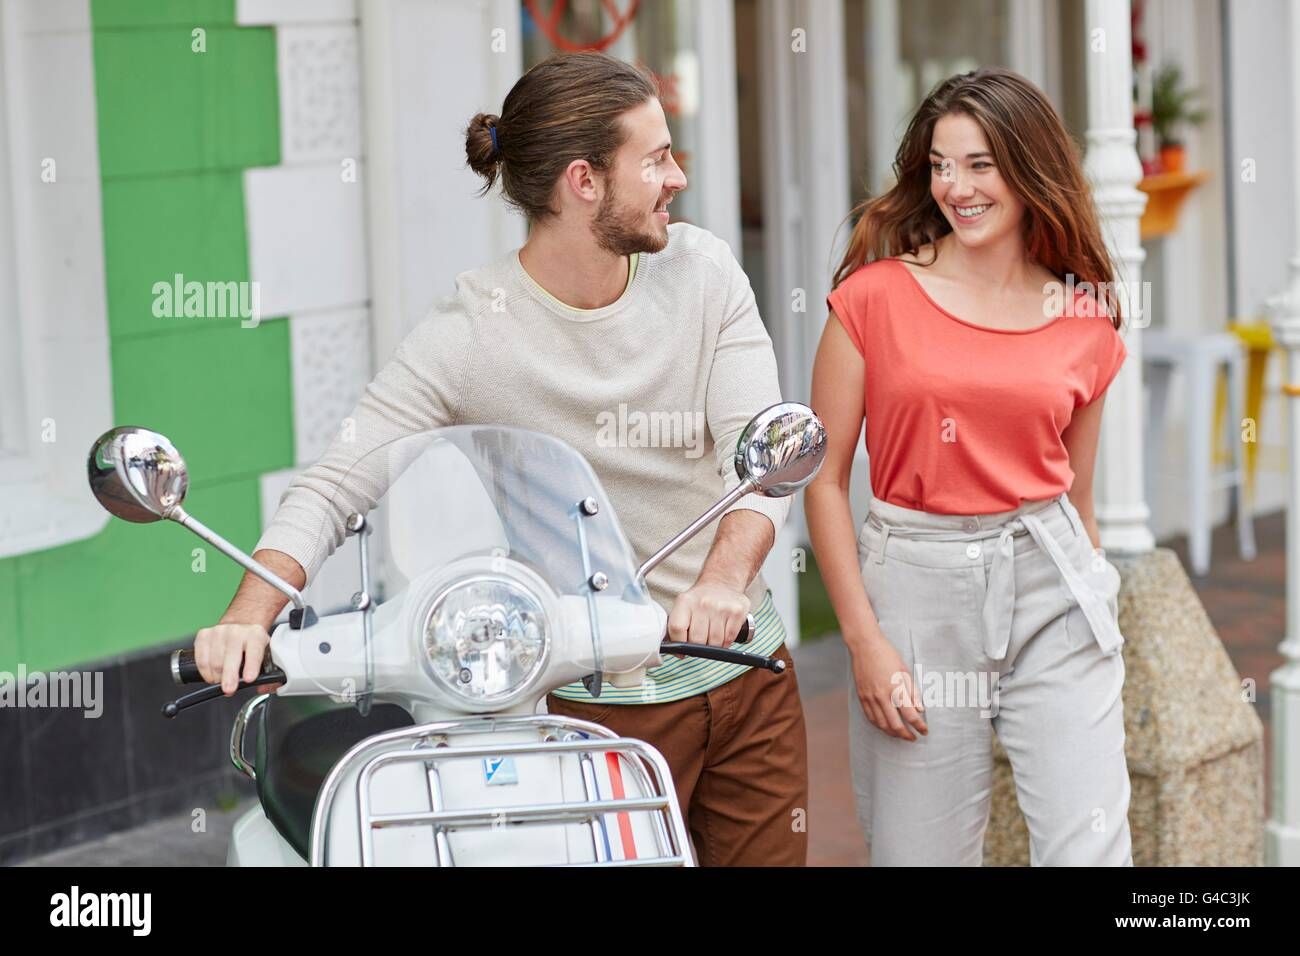 MODEL RELEASED. Young couple outside cafe, man holding moped. - Stock Image